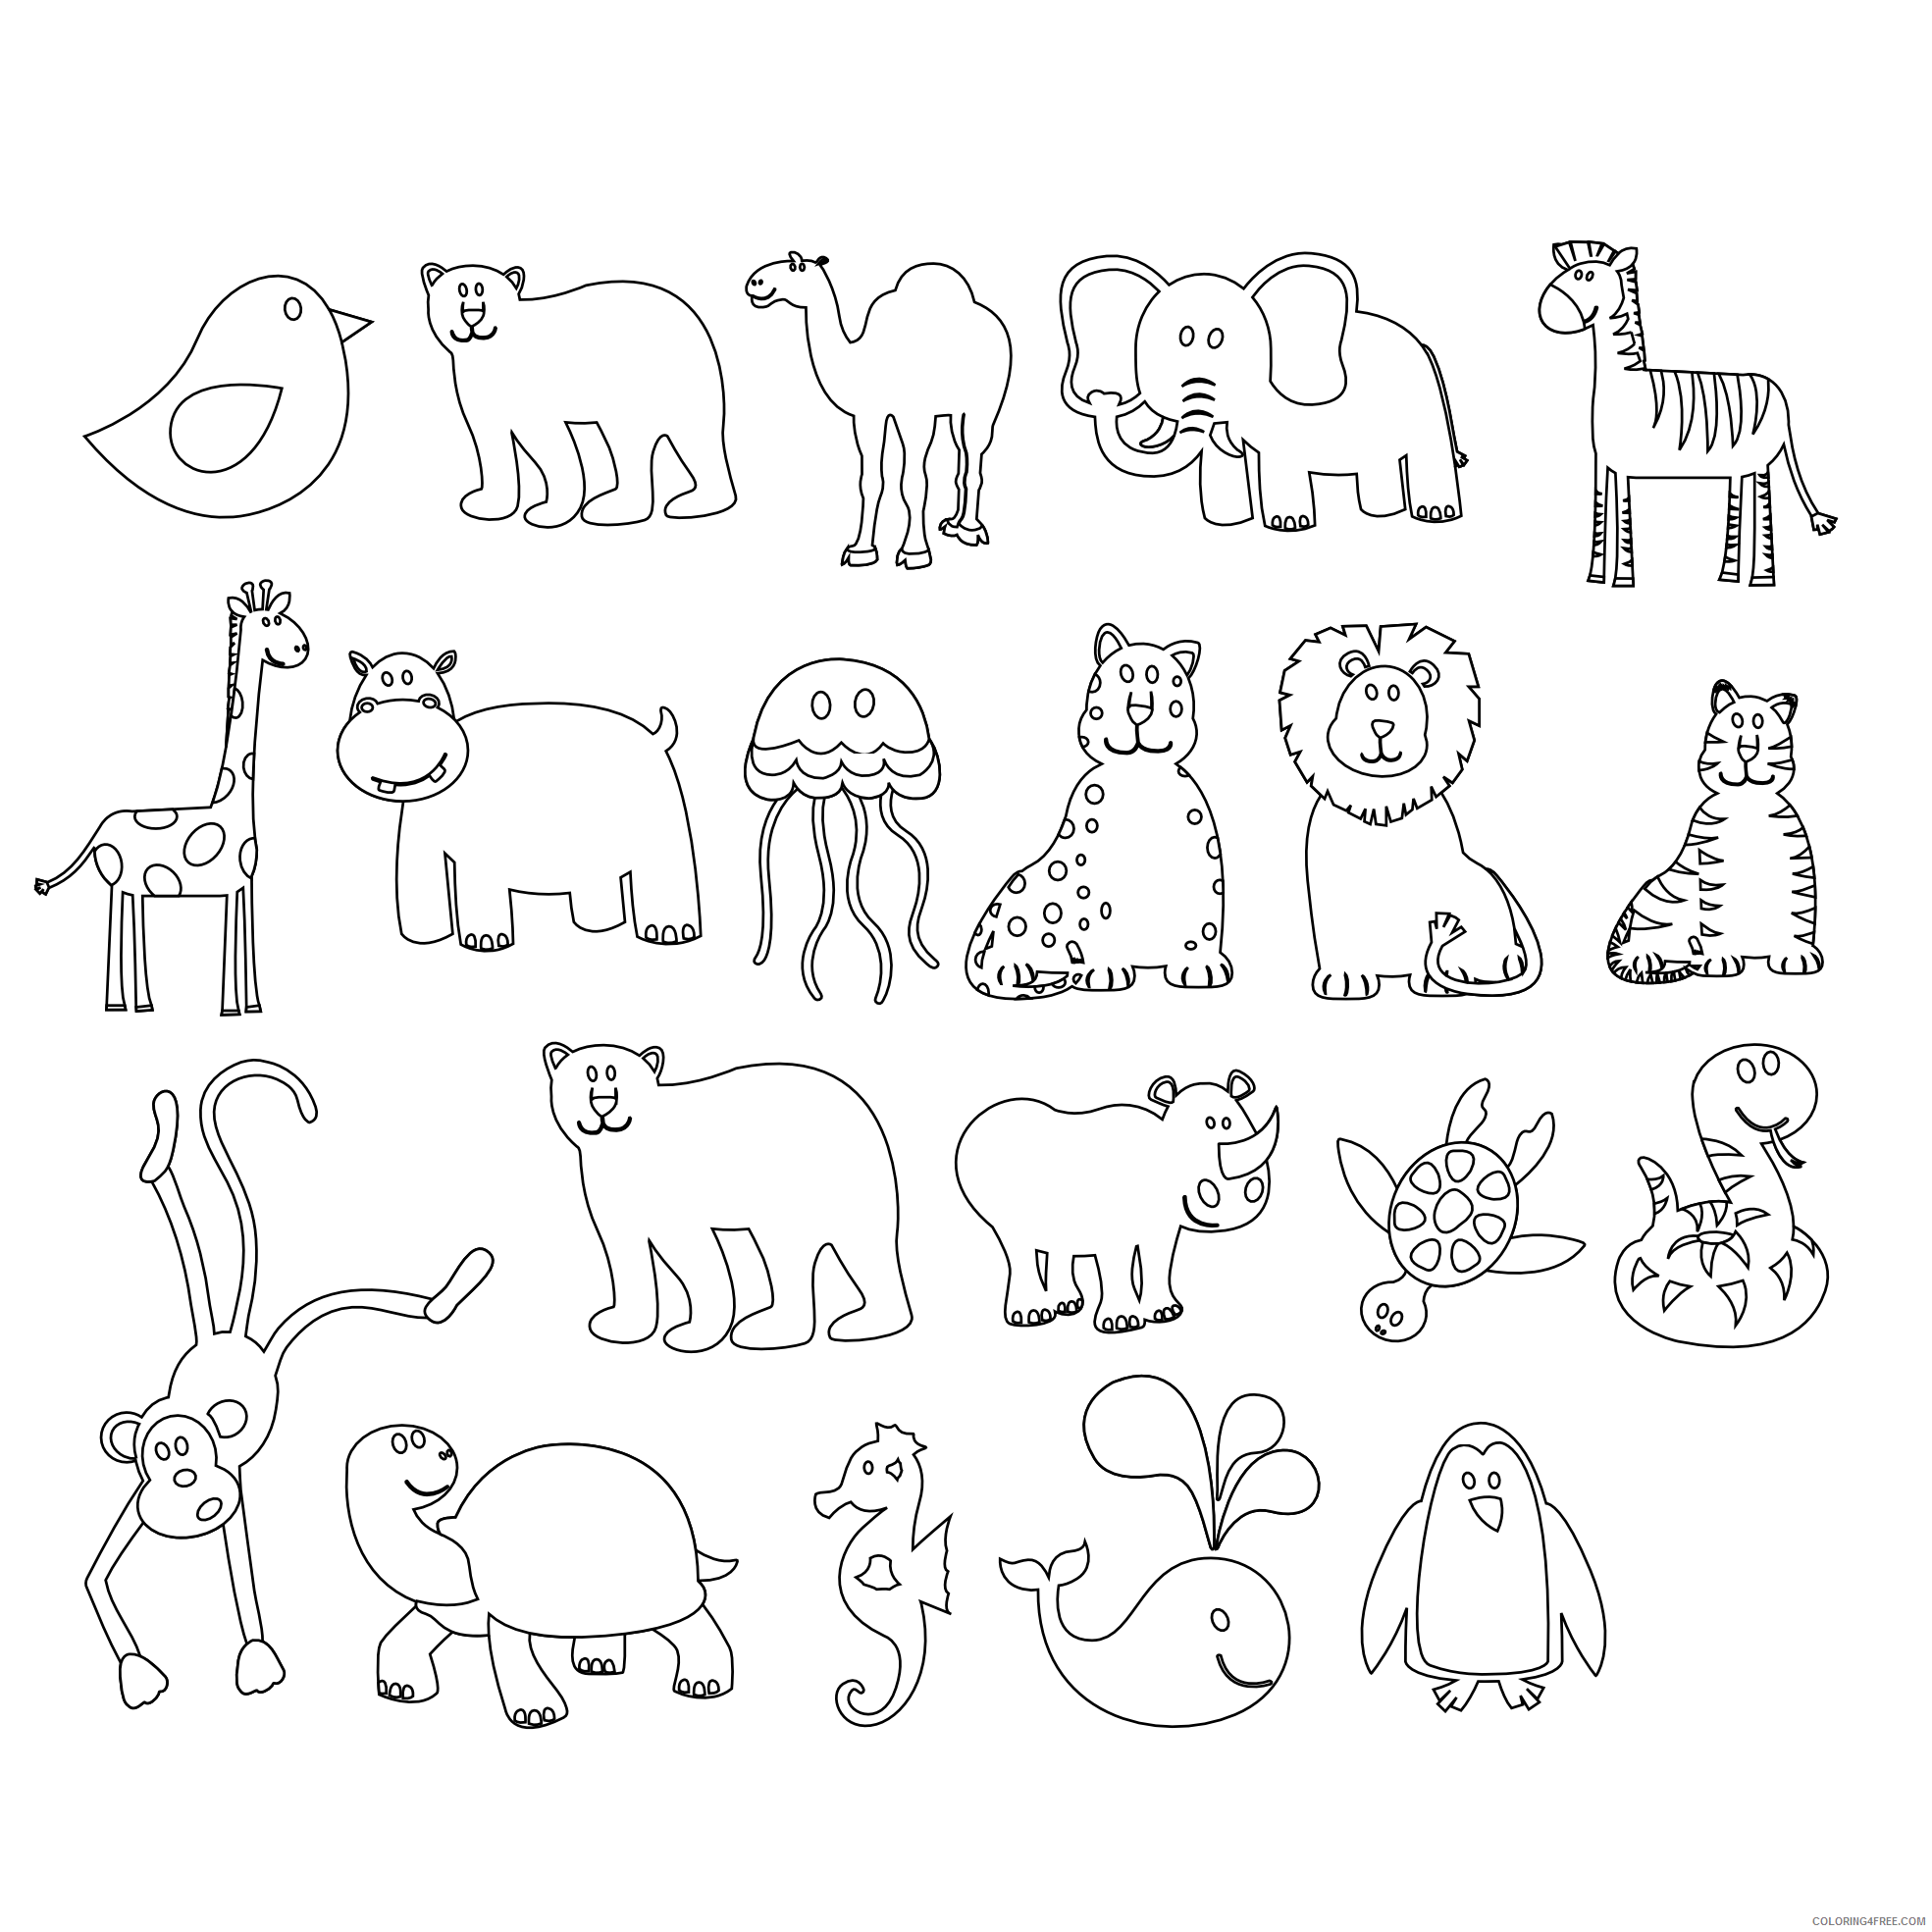 Black and White Animals Coloring Pages colorful animals black white line Printable Coloring4free